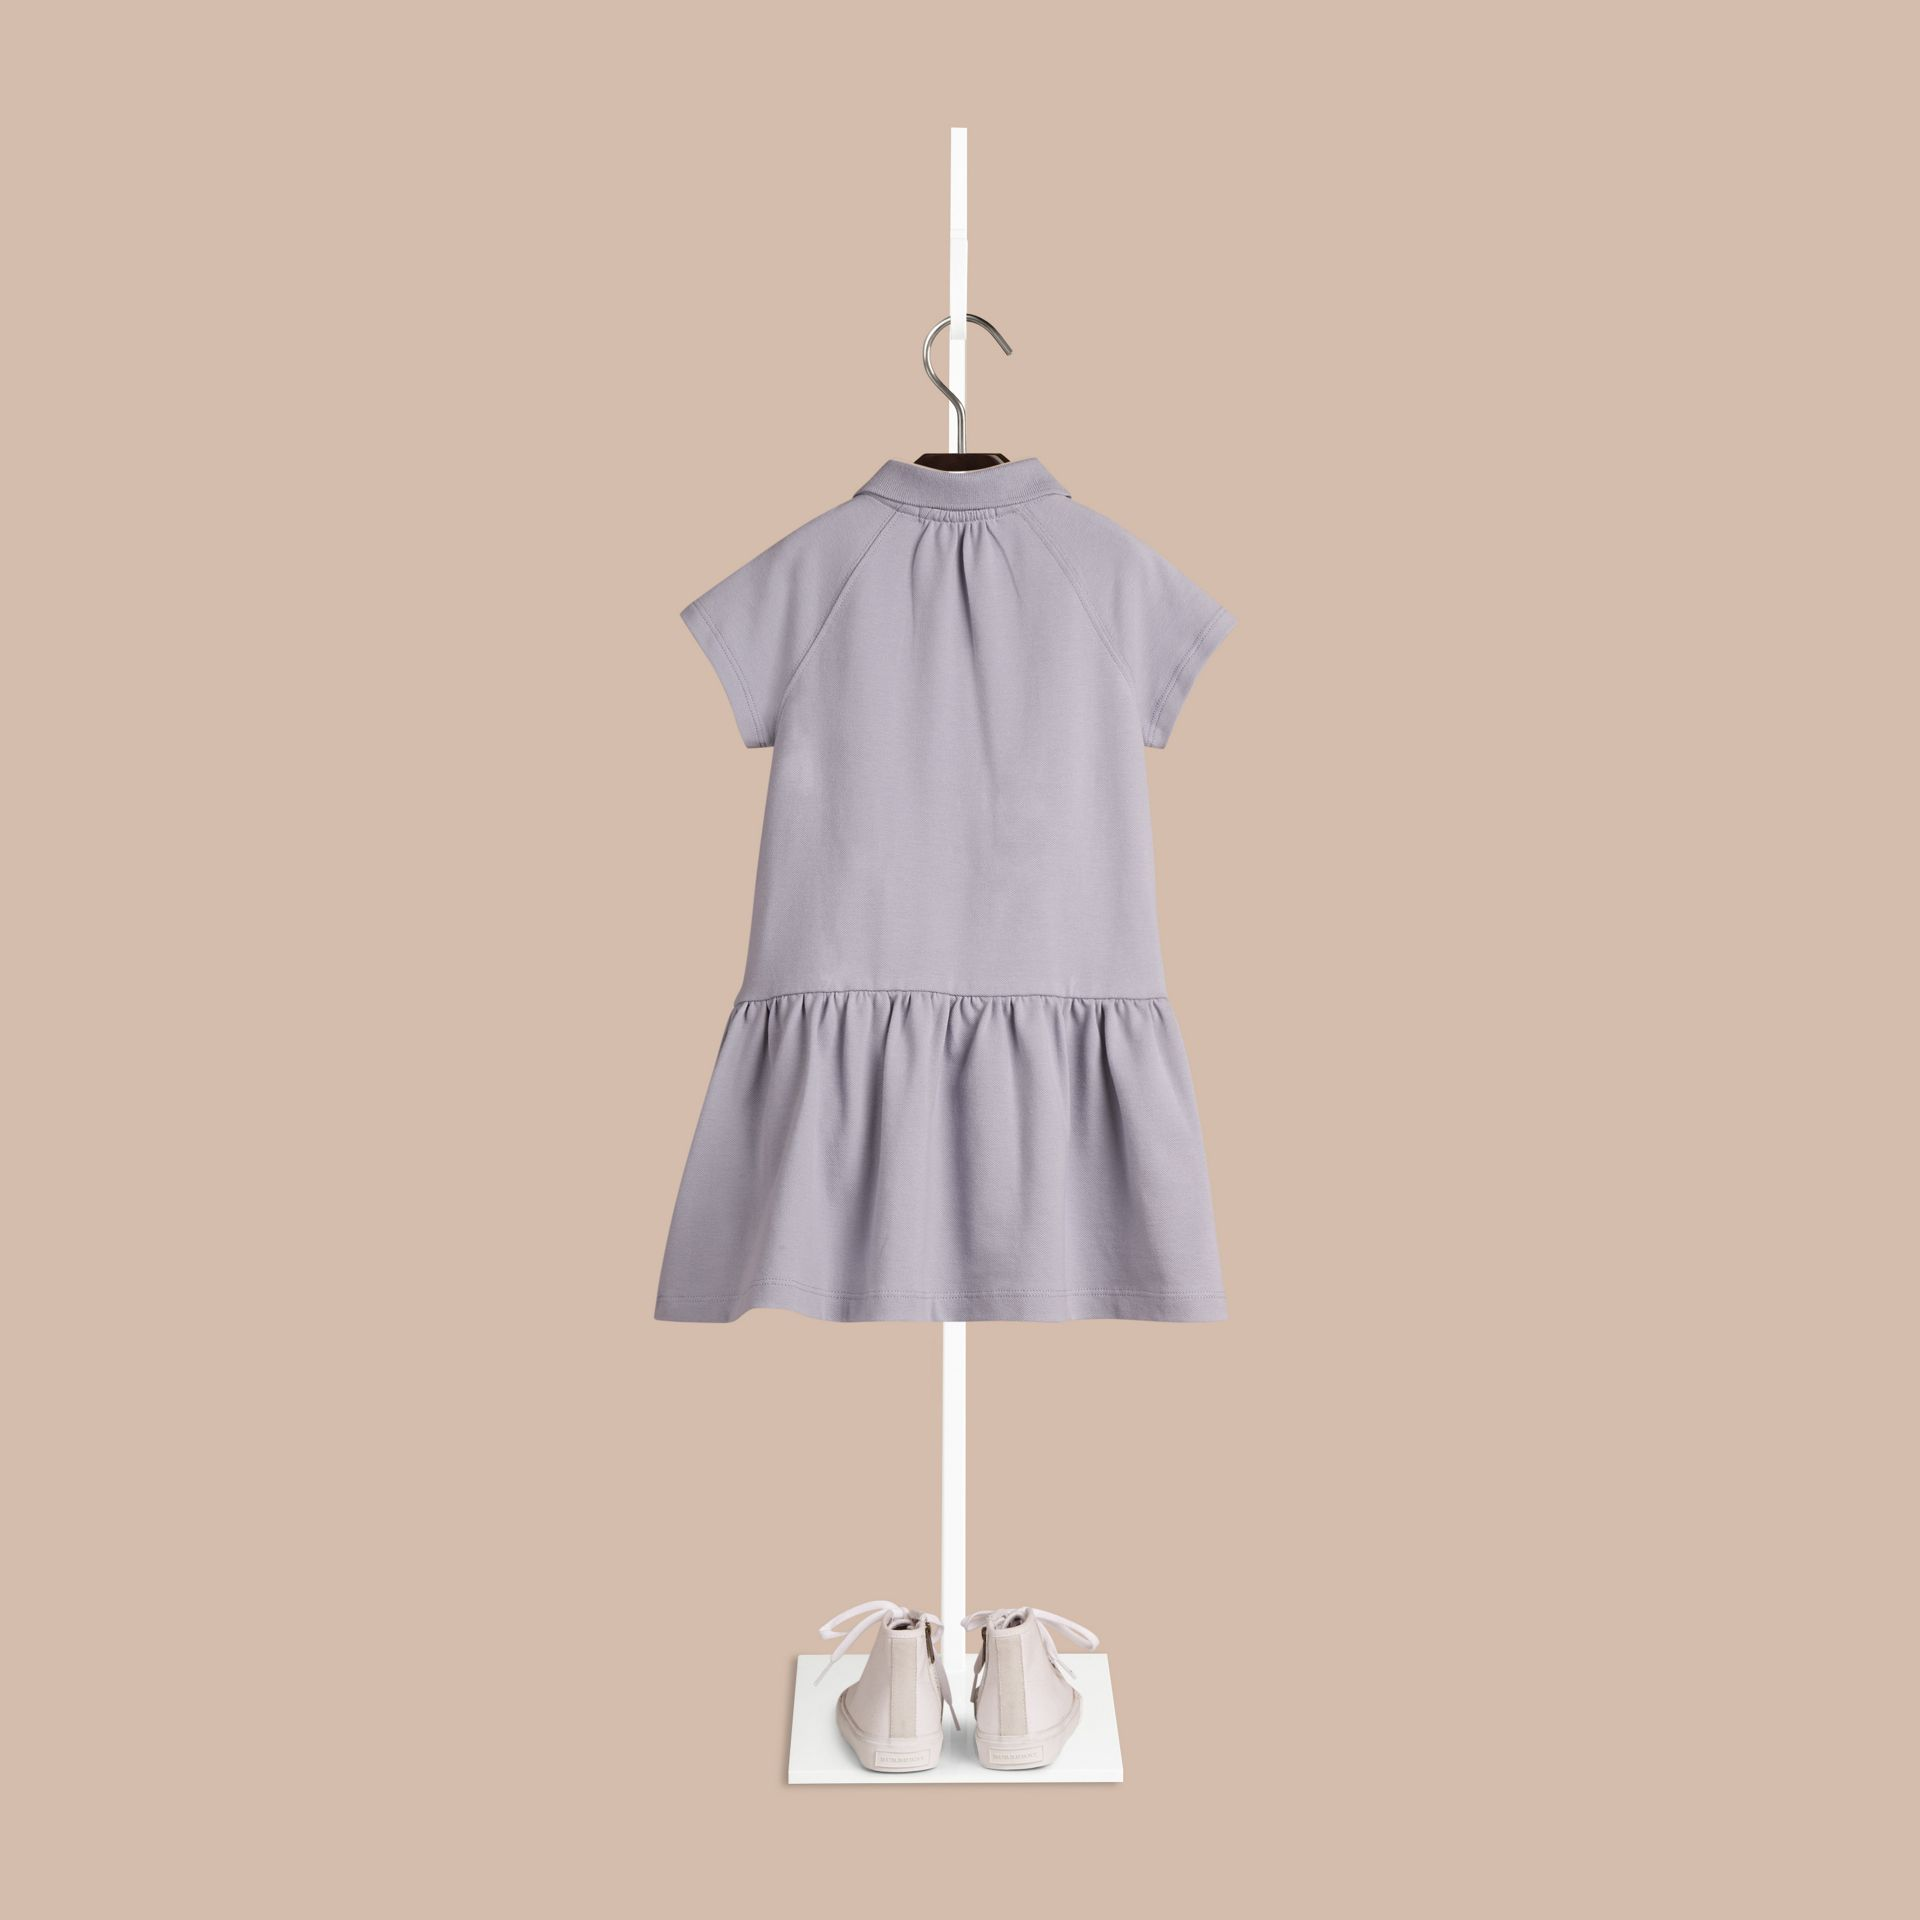 Pale lupin blue Check Placket Cotton Blend T-Shirt Dress Pale Lupin Blue - gallery image 2